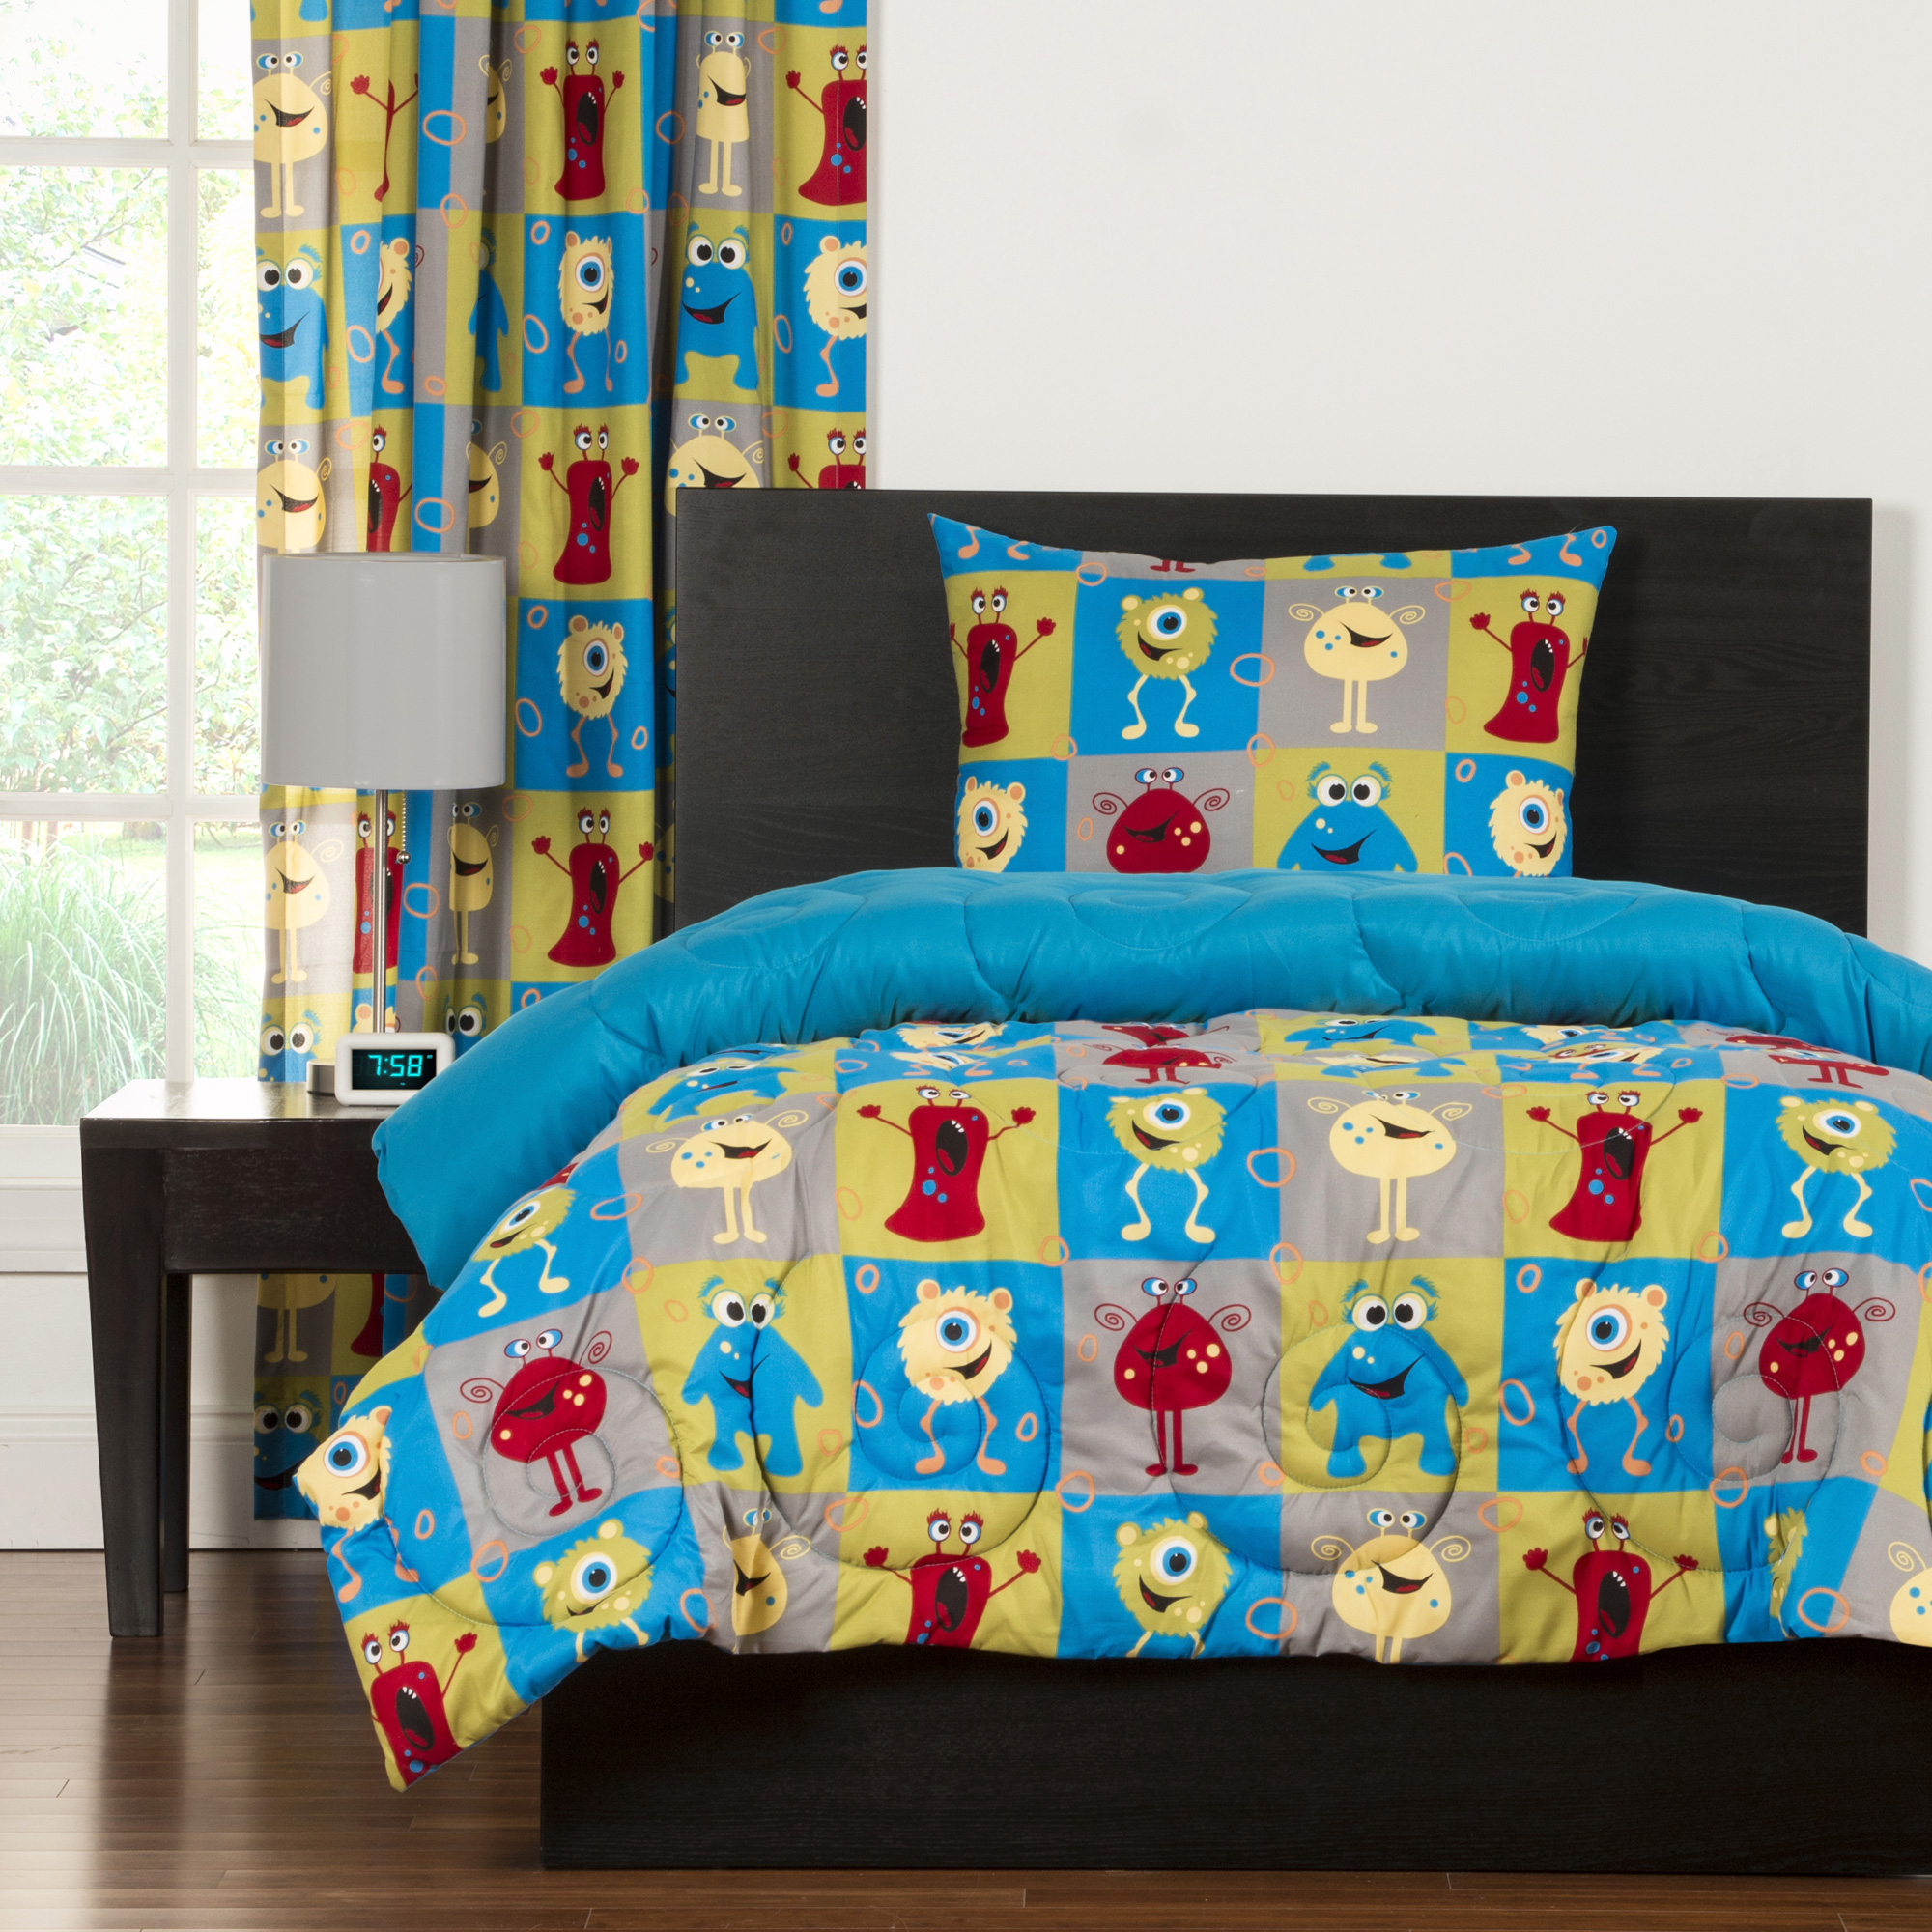 Sis Enterprises | Crayola Monster Friends 2 Piece Twin Comforter Set